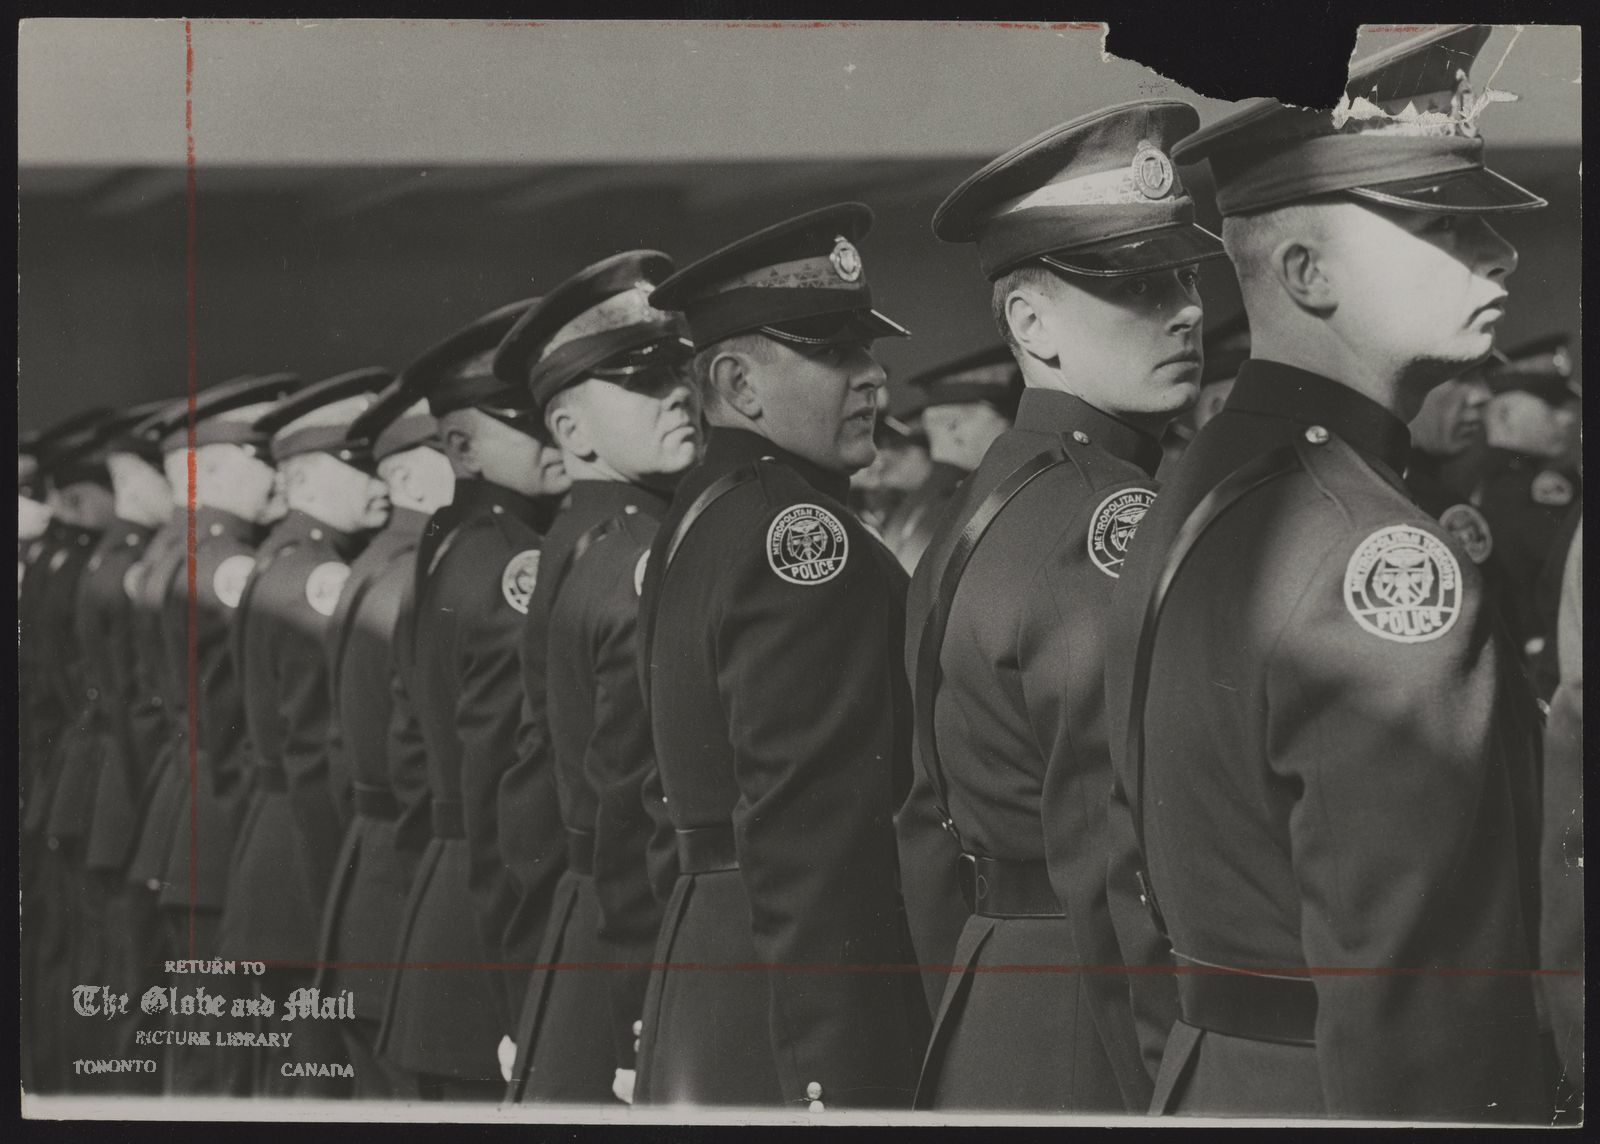 TORONTO metro Police Dept. All eyes are to the right as 83 policemen form up for graduation parade at Metropolitan Toronto Police College at Denison Armories.